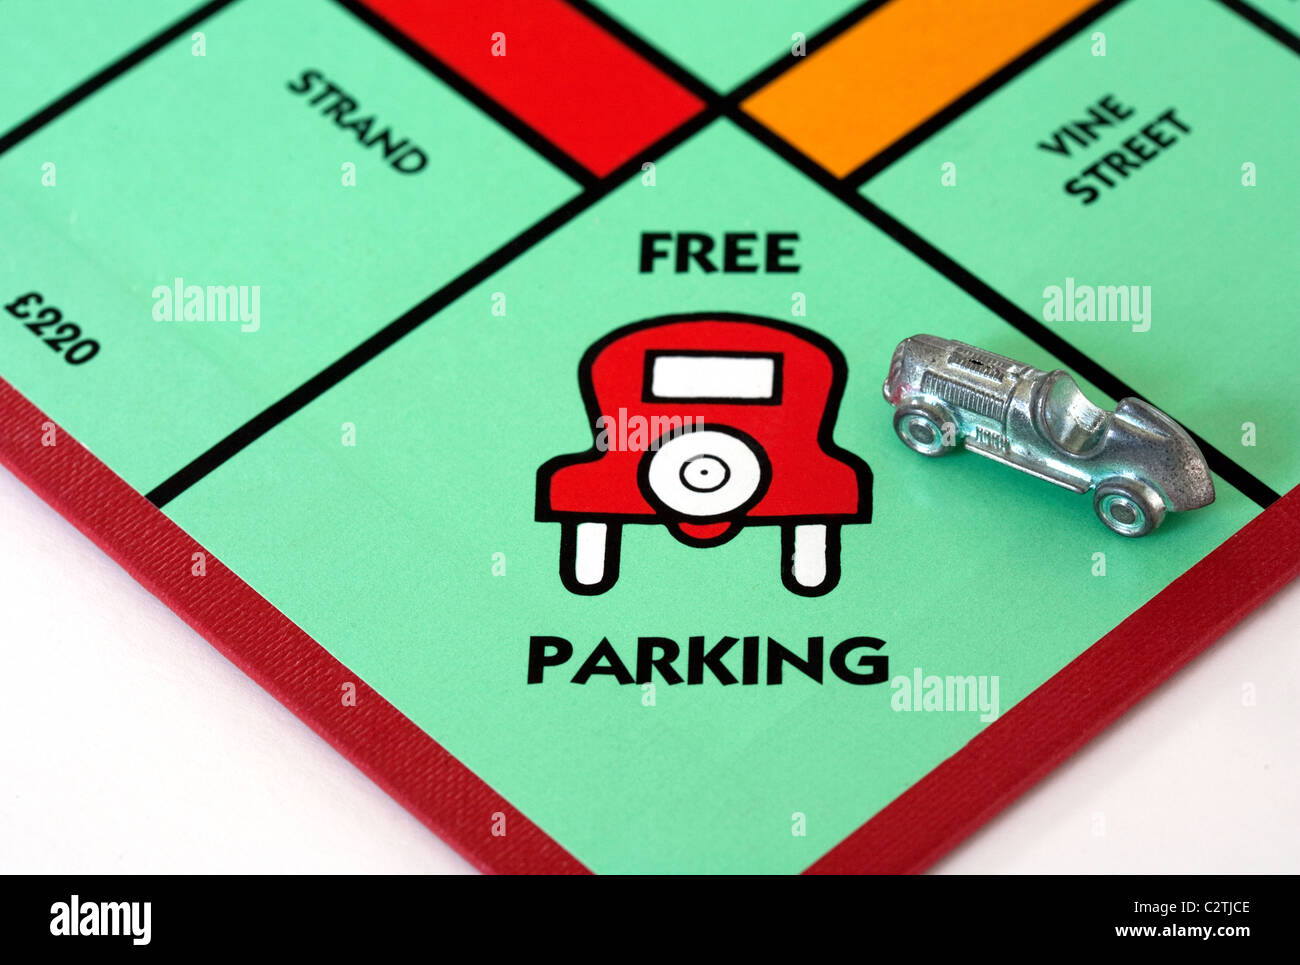 A car on the 'Free Parking' space on a monopoly game board UK - Stock Image